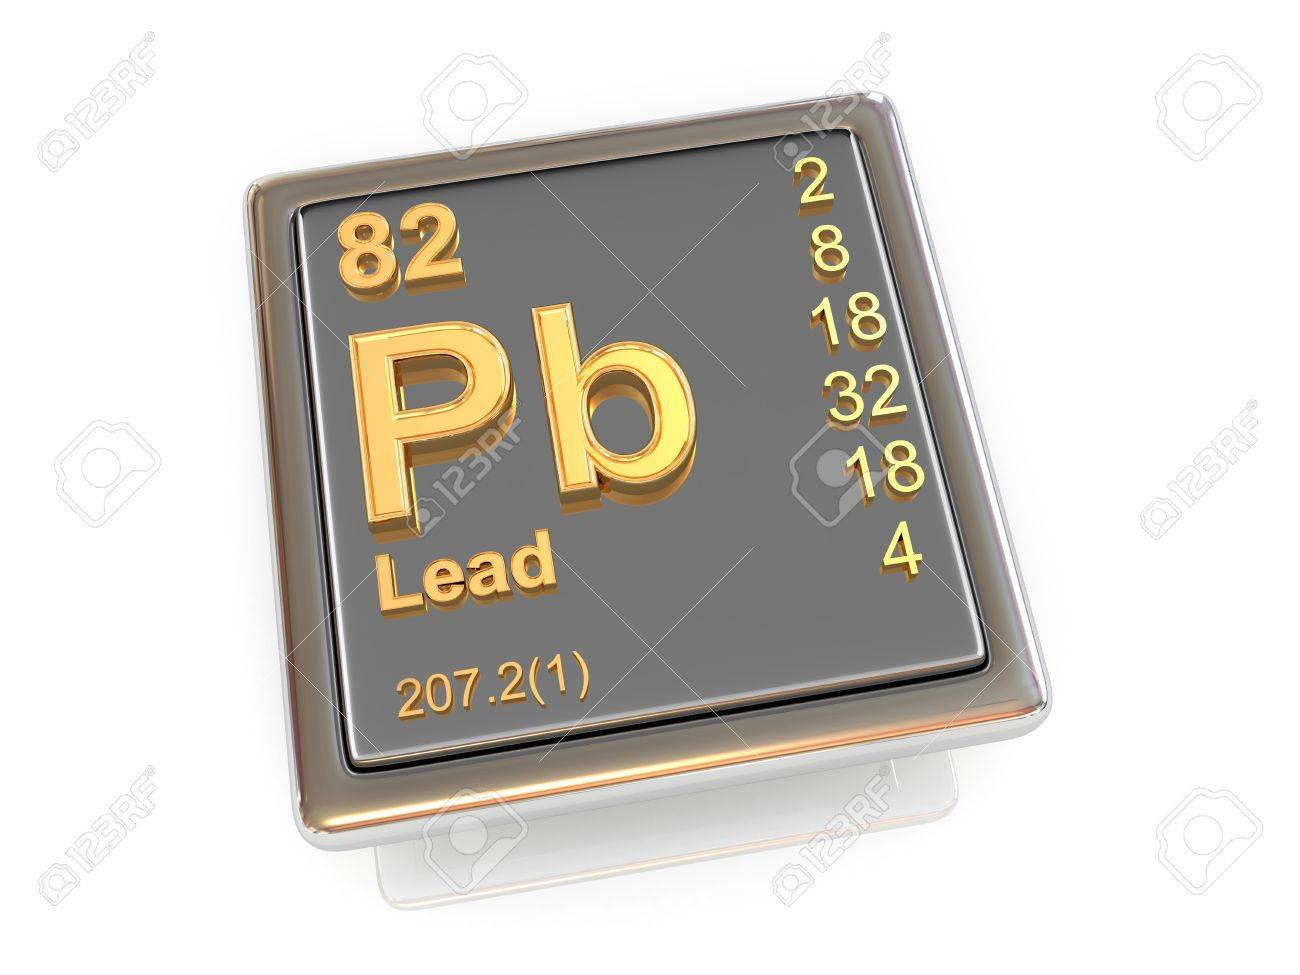 Lead Chemical Element 3d Stock Photo Picture And Royalty Free Image